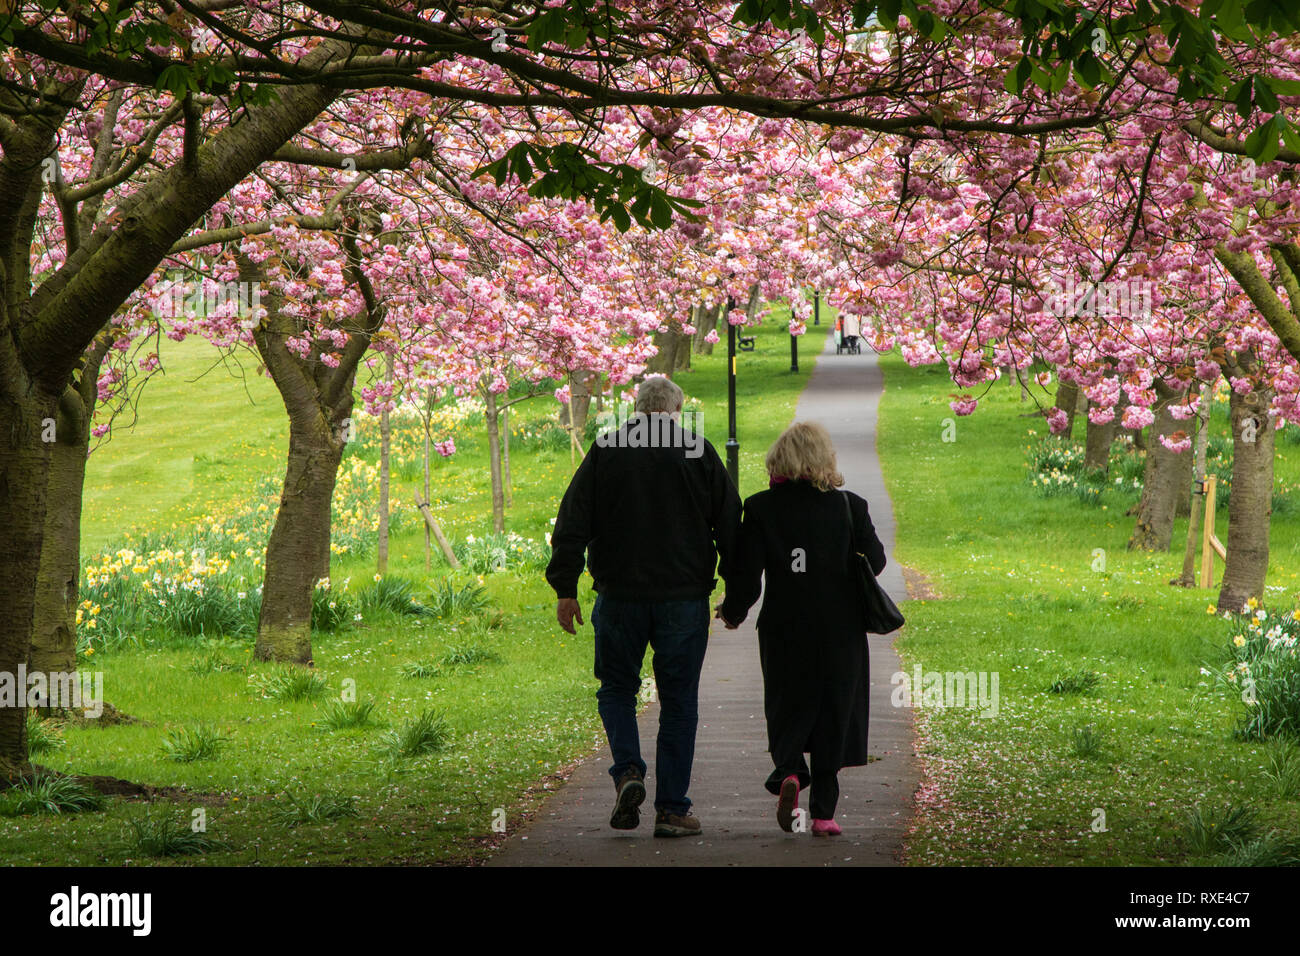 A couple walking down a path lined with Pink Cherry Blossom Trees,Stray Rein,Harrogate,North Yorkshire,England,UK. - Stock Image